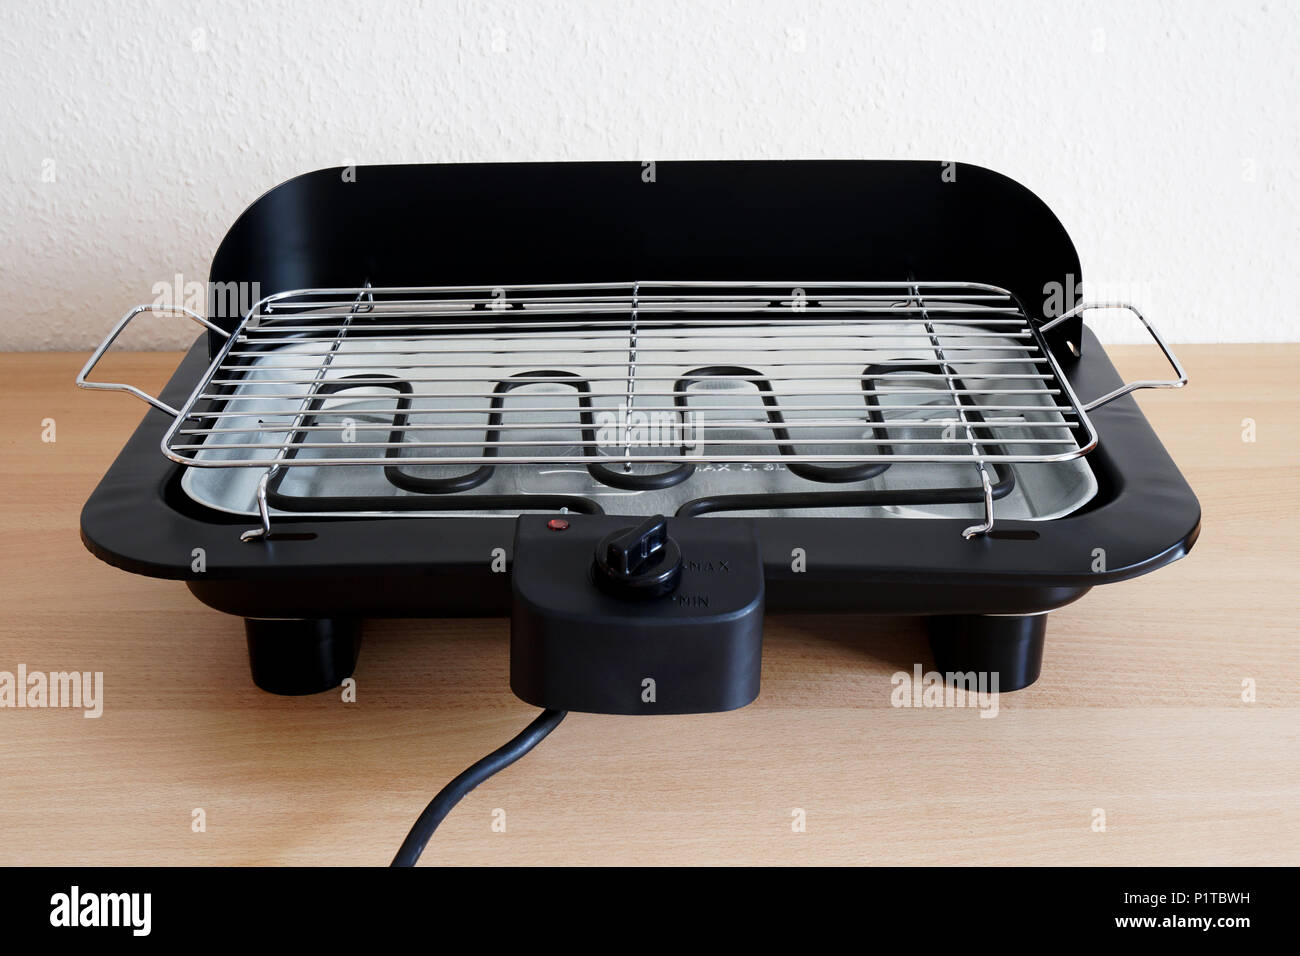 Electric Grill Stock Photos & Electric Grill Stock Images ...